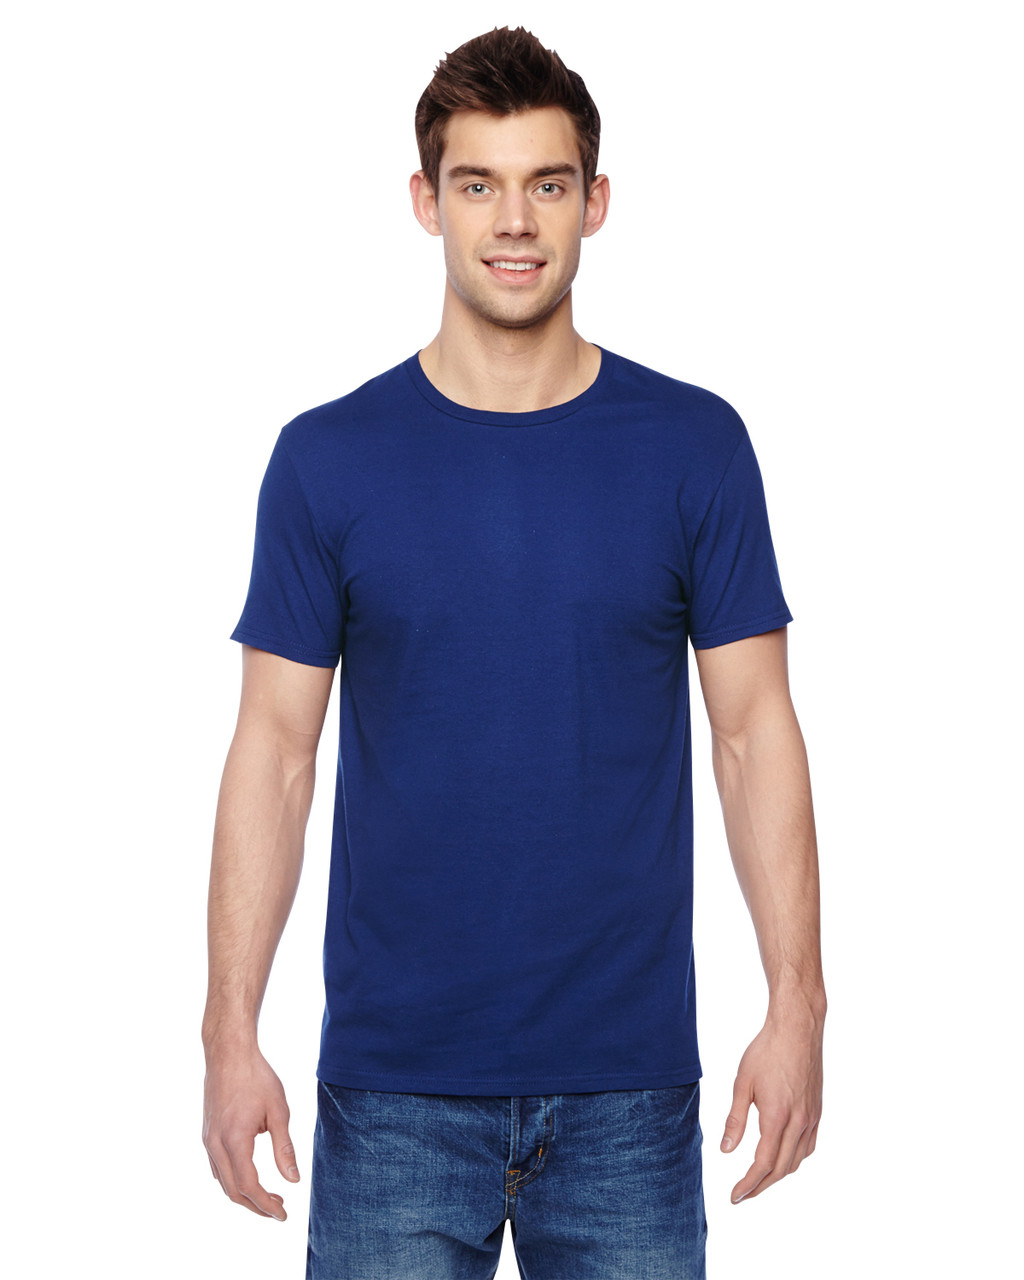 Admiral Blue - SF45R Fruit of the Loom Softspun Cotton T-Shirt | Blankclothing.ca